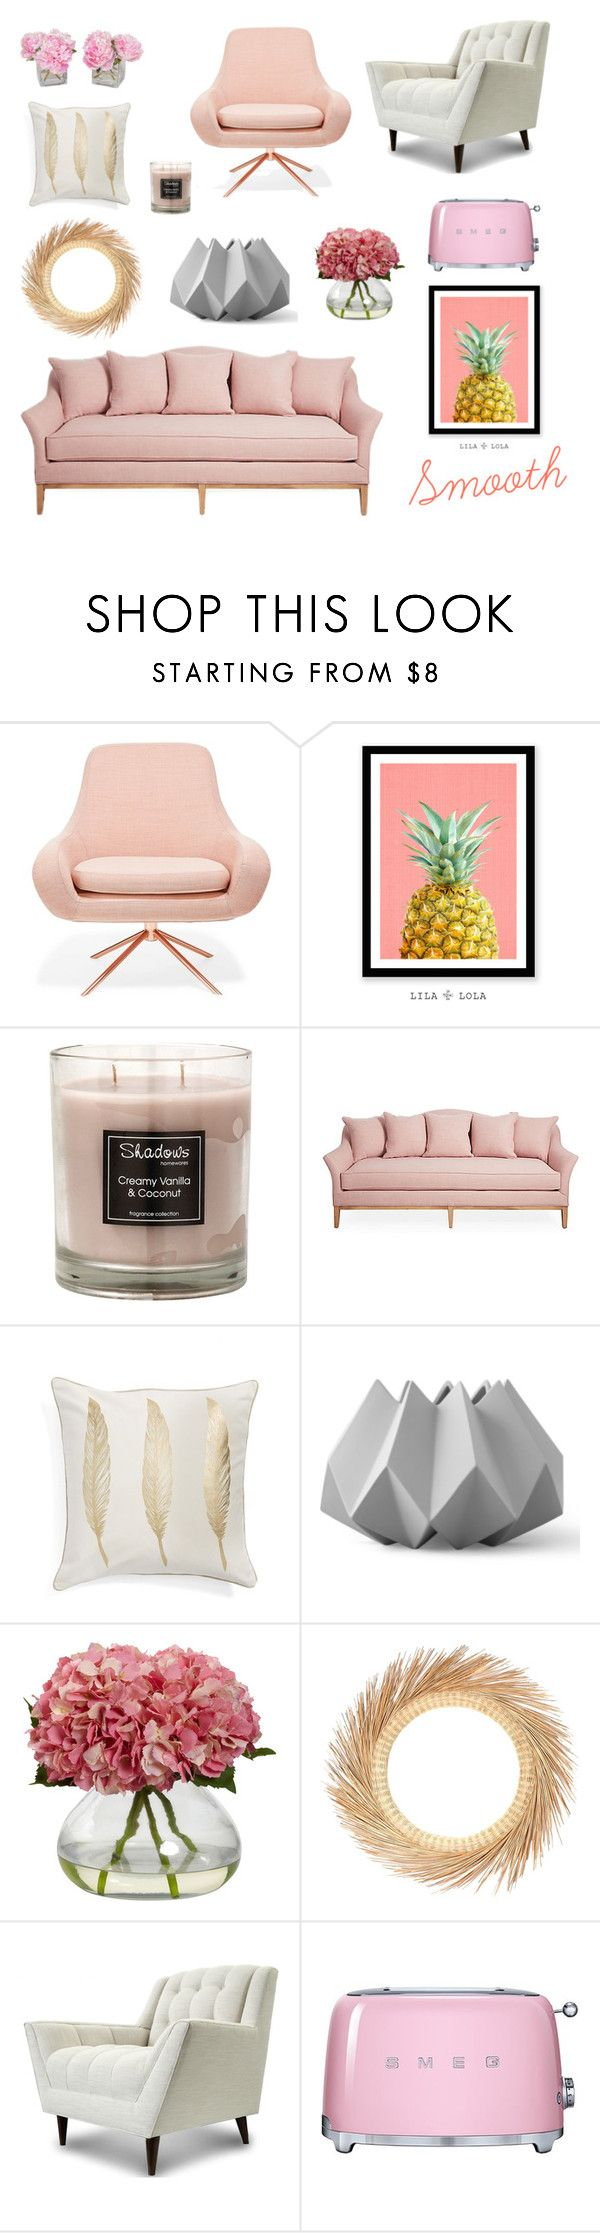 """Soft Pink and Gold Living Room"" by dpintainha on Polyvore featuring interior, interiors, interior design, home, home decor, interior decorating, Softline, Levtex, Menu and Thrive"